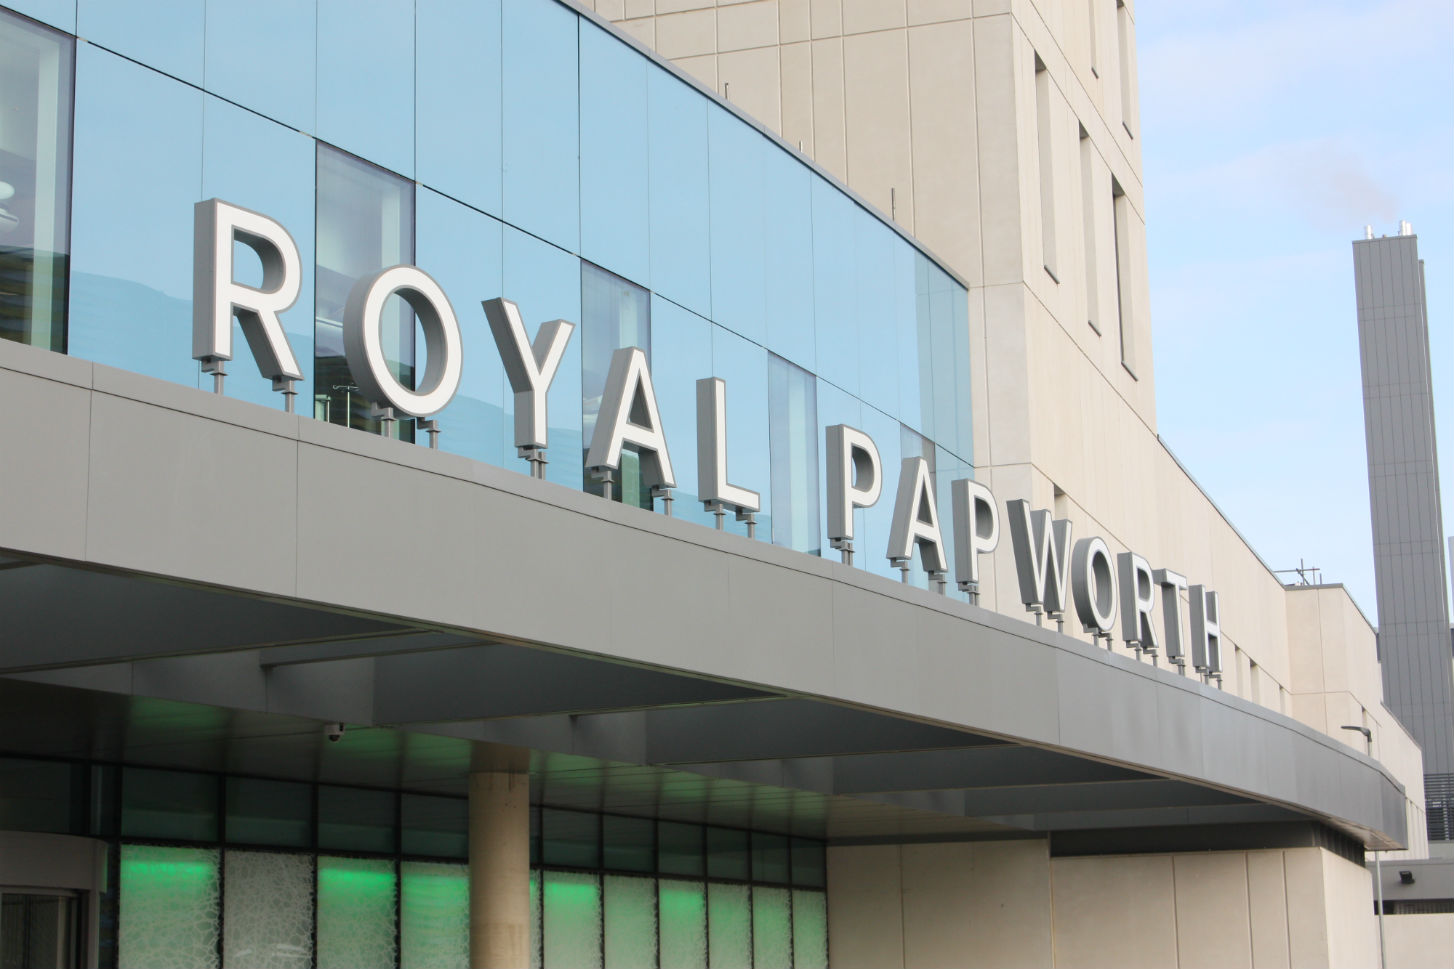 A look inside the new Royal Papworth Hospital